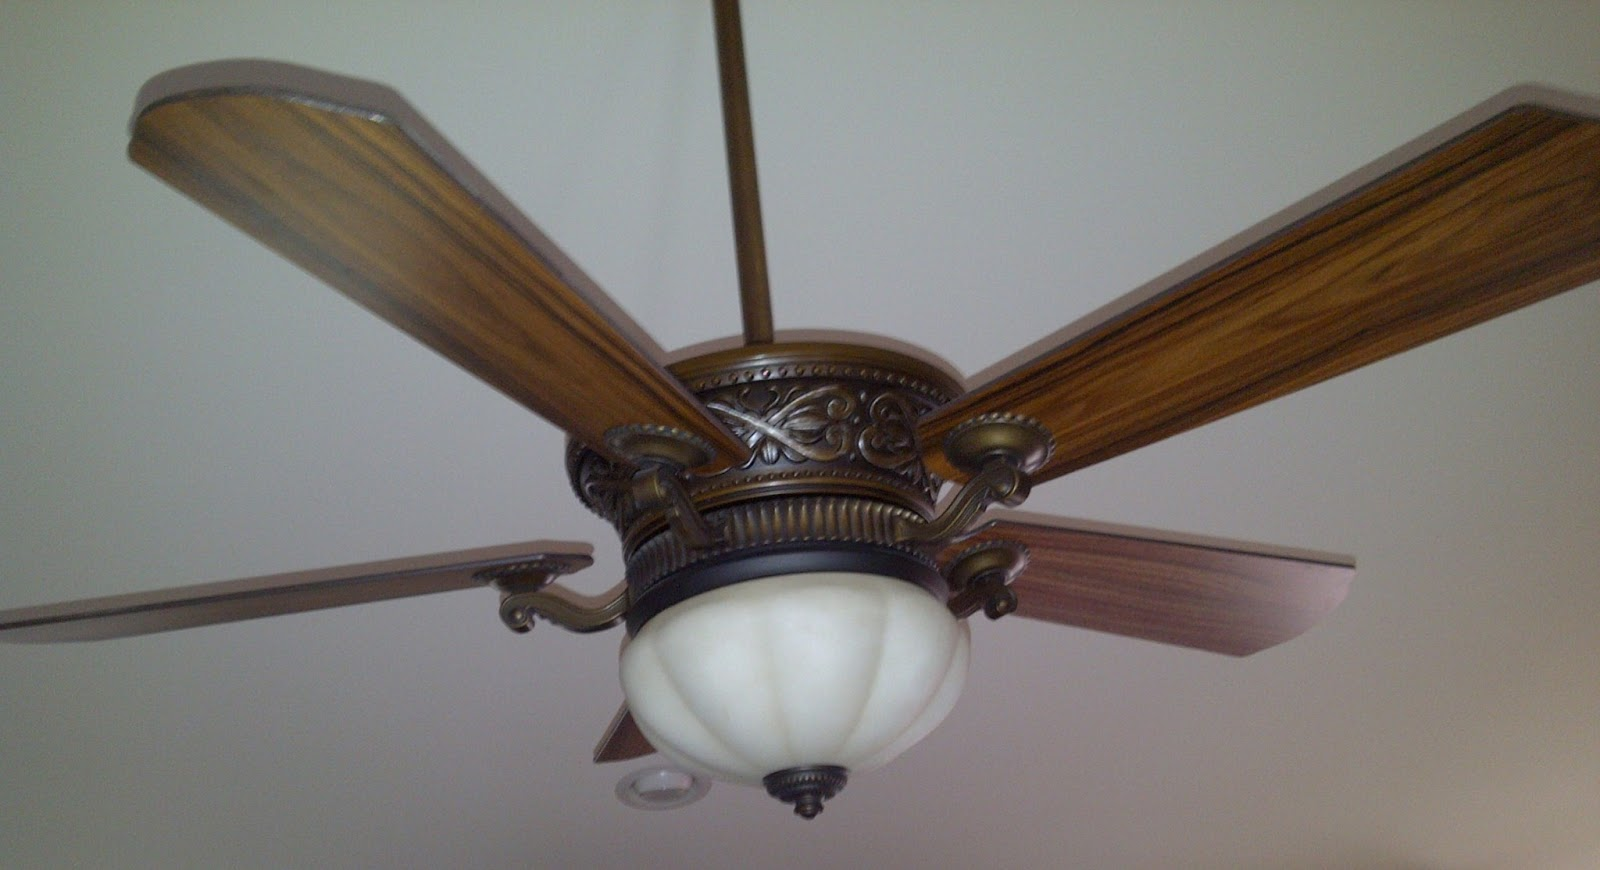 hight resolution of harbor breeze wakefield ceiling fan with uplight and remote control image source dr penny pincher